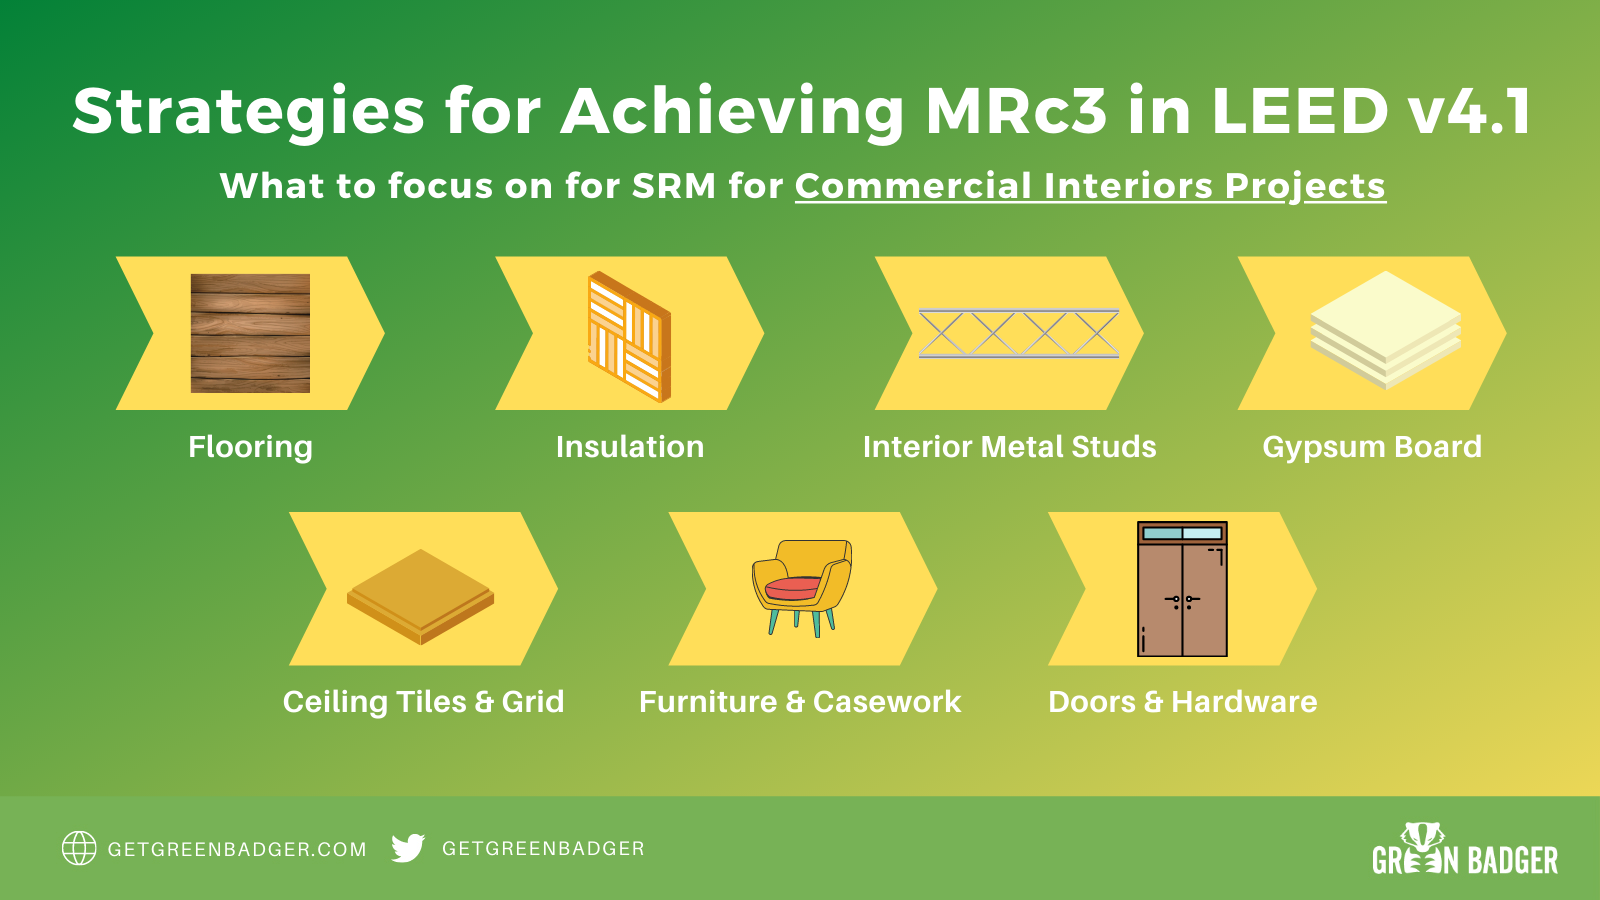 mrc3-commercial-interiors-projects-LEEDv4